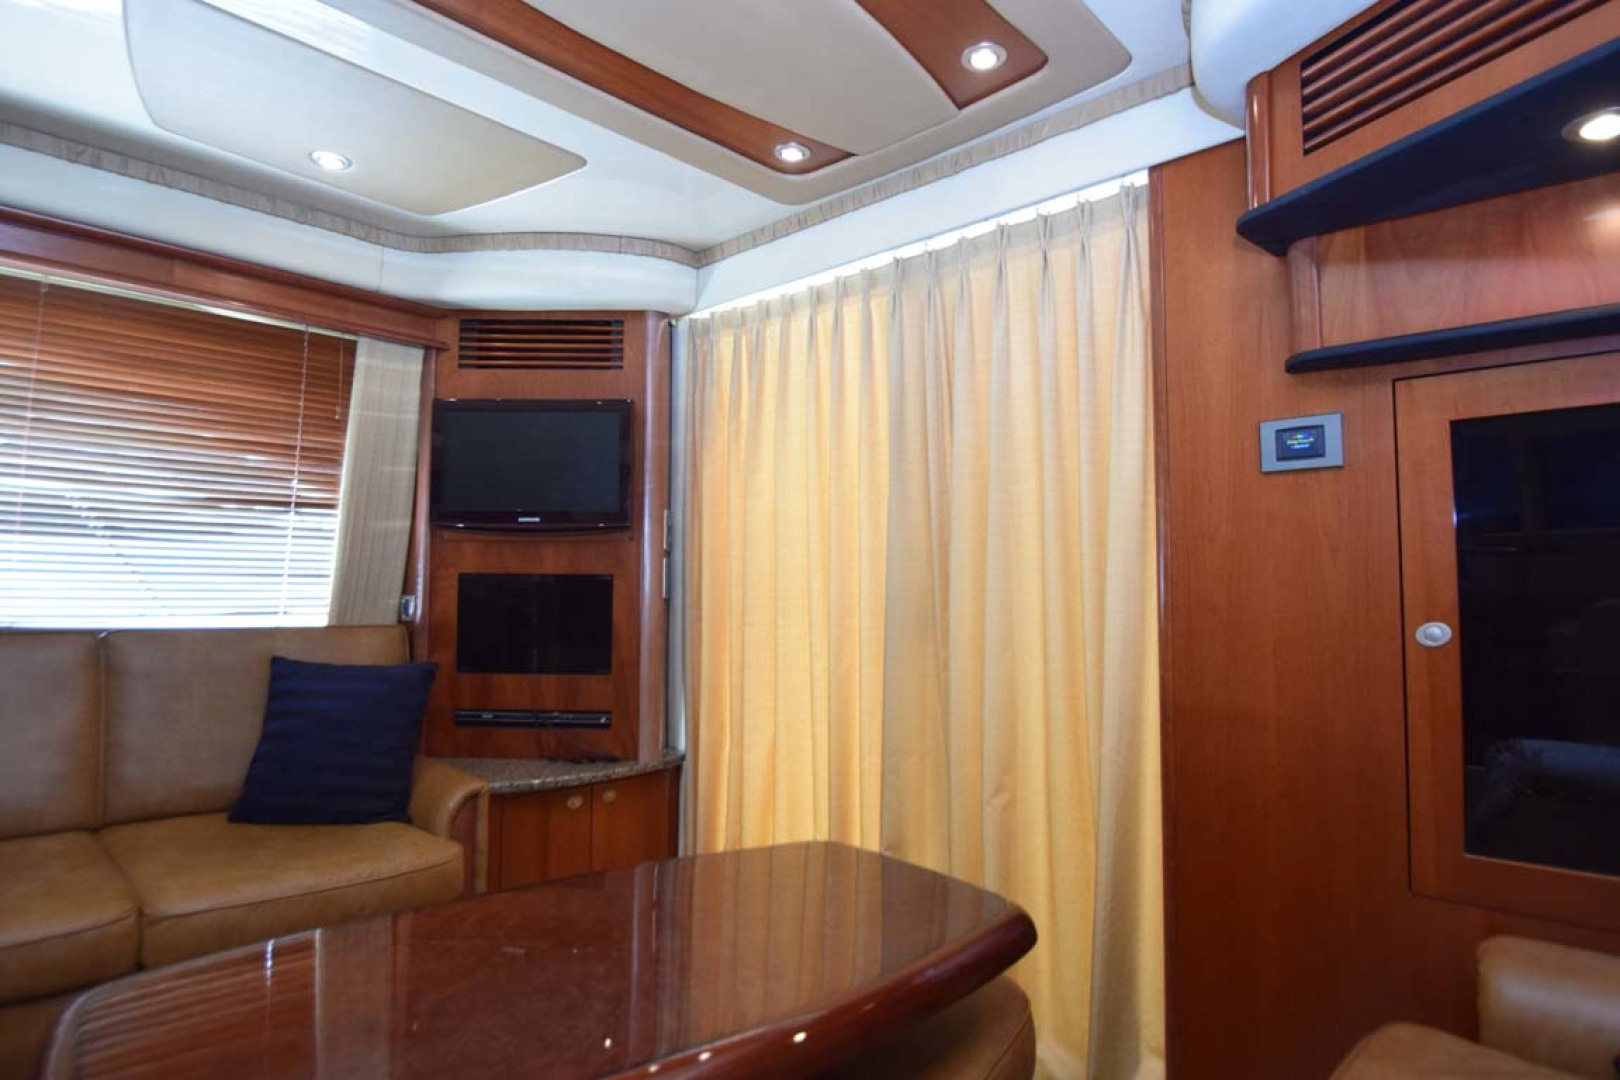 Sea Ray-44 Sedan Bridge 2006-Mr. Munch Coral Gables-Florida-United States-Cabin Entry Sliders  Curtained-1229828 | Thumbnail